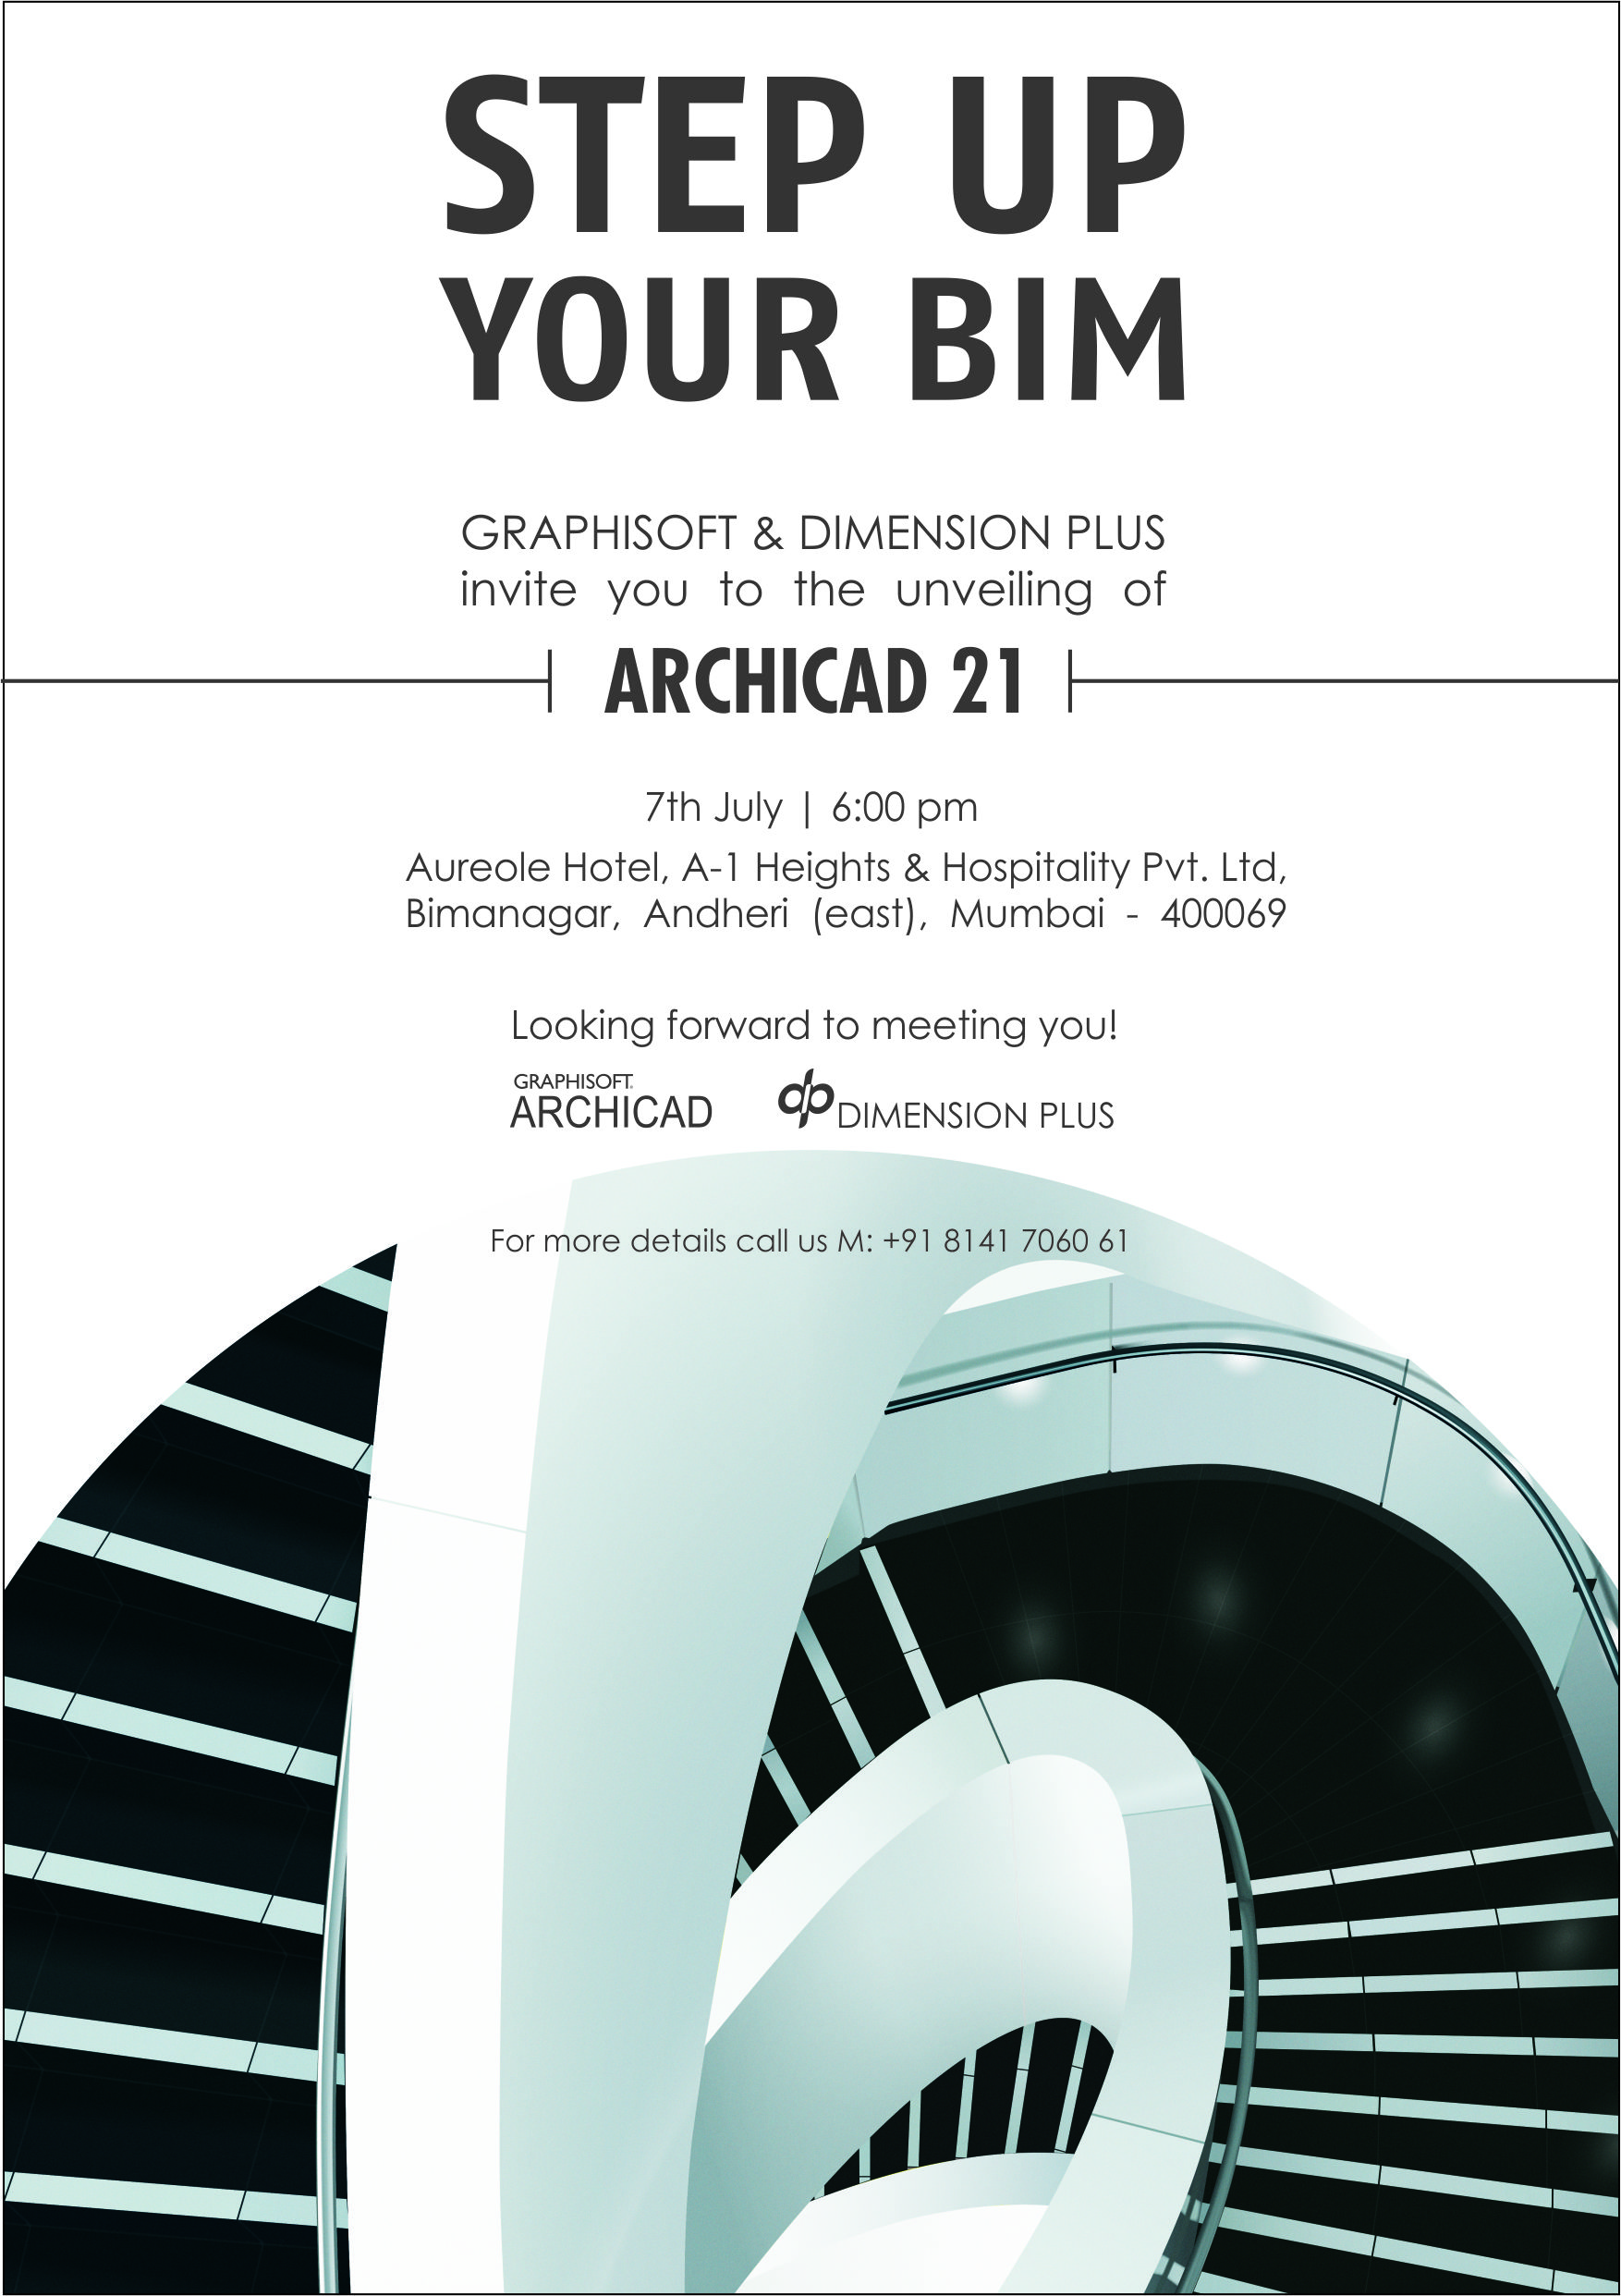 ARCHICAD 21 Launch In Mumbai on 7th July | ARCHICAD | 3d design